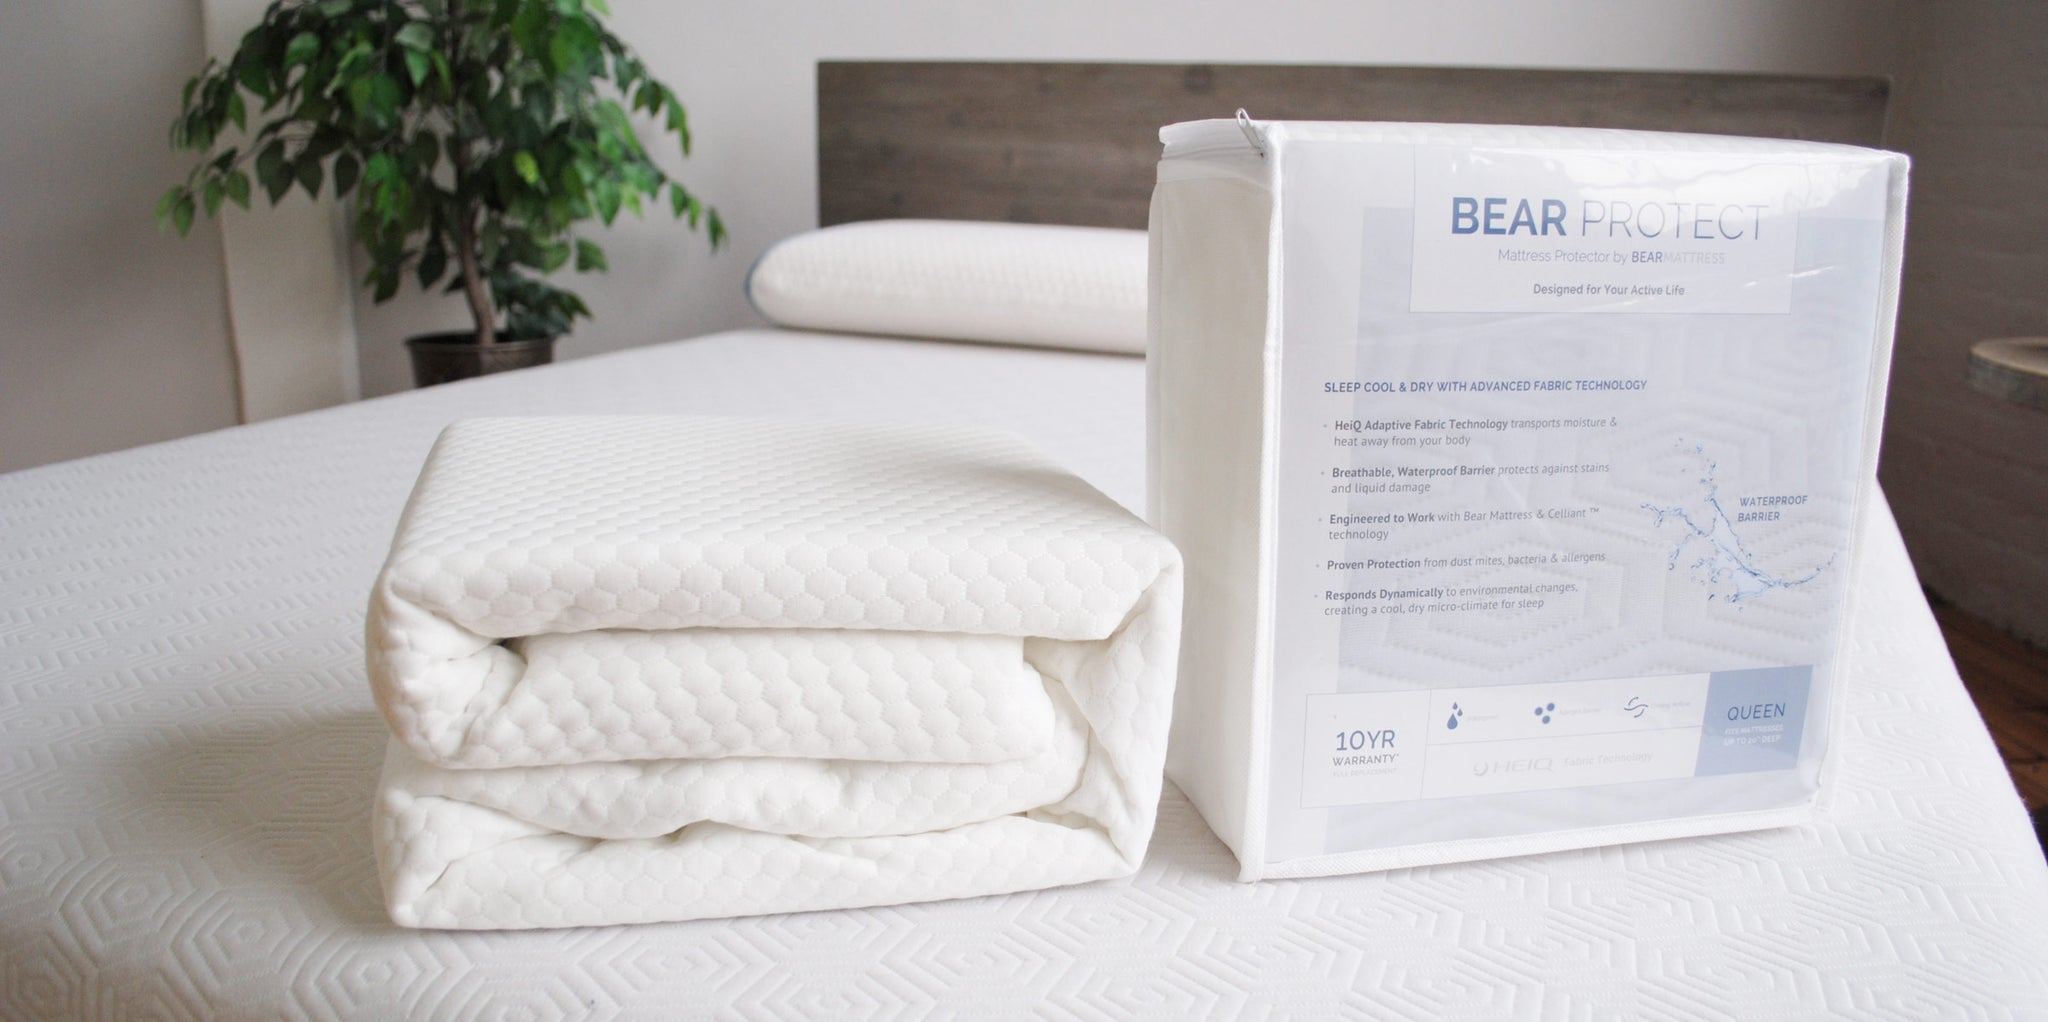 Protect your investment: the benefits of a mattress protector